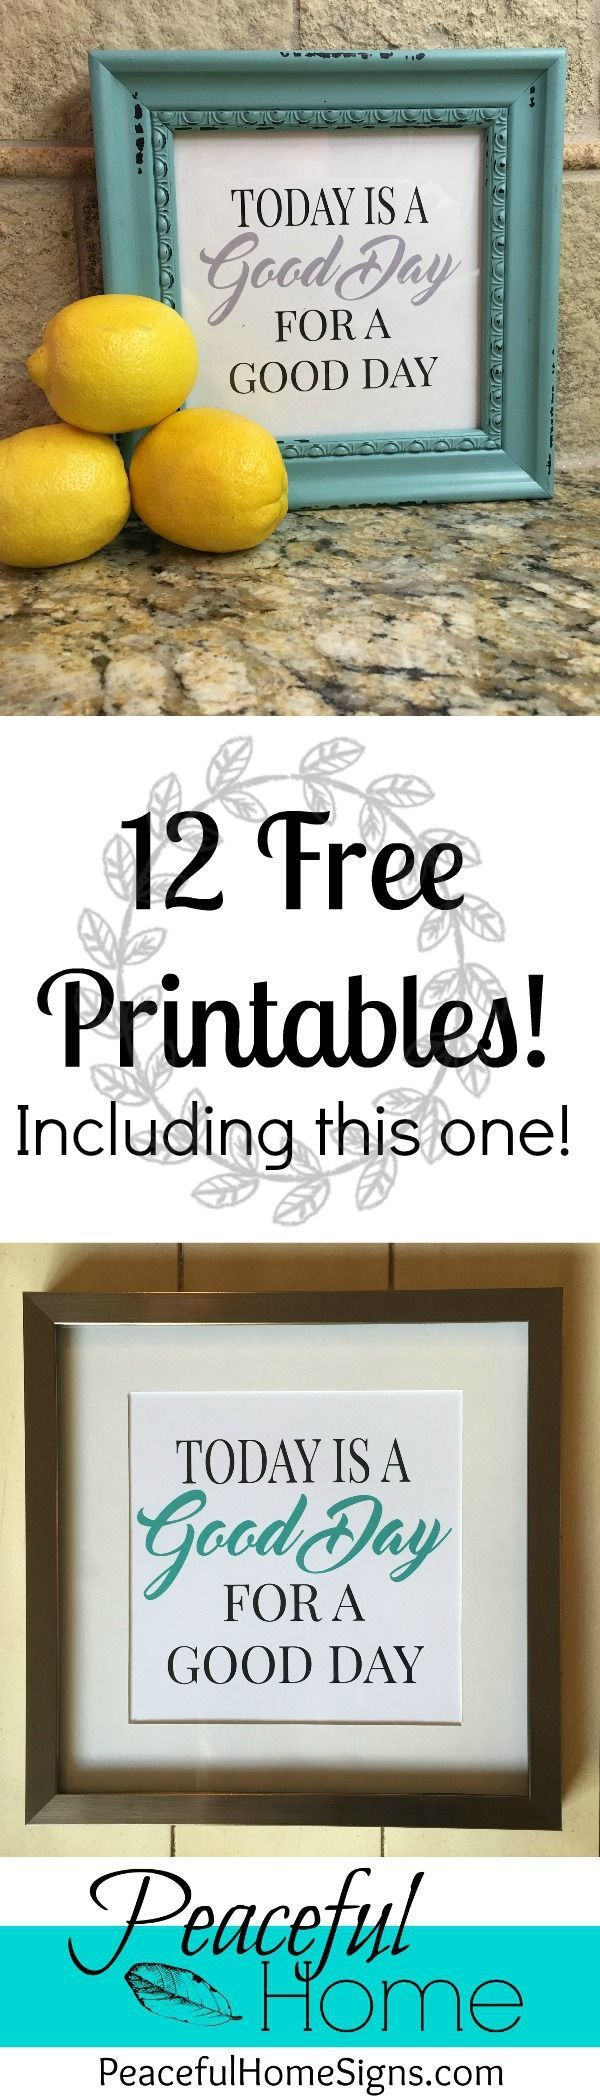 best 25 affordable home decor ideas only on pinterest house 12 free printables to spruce up your decor free printable with today is a